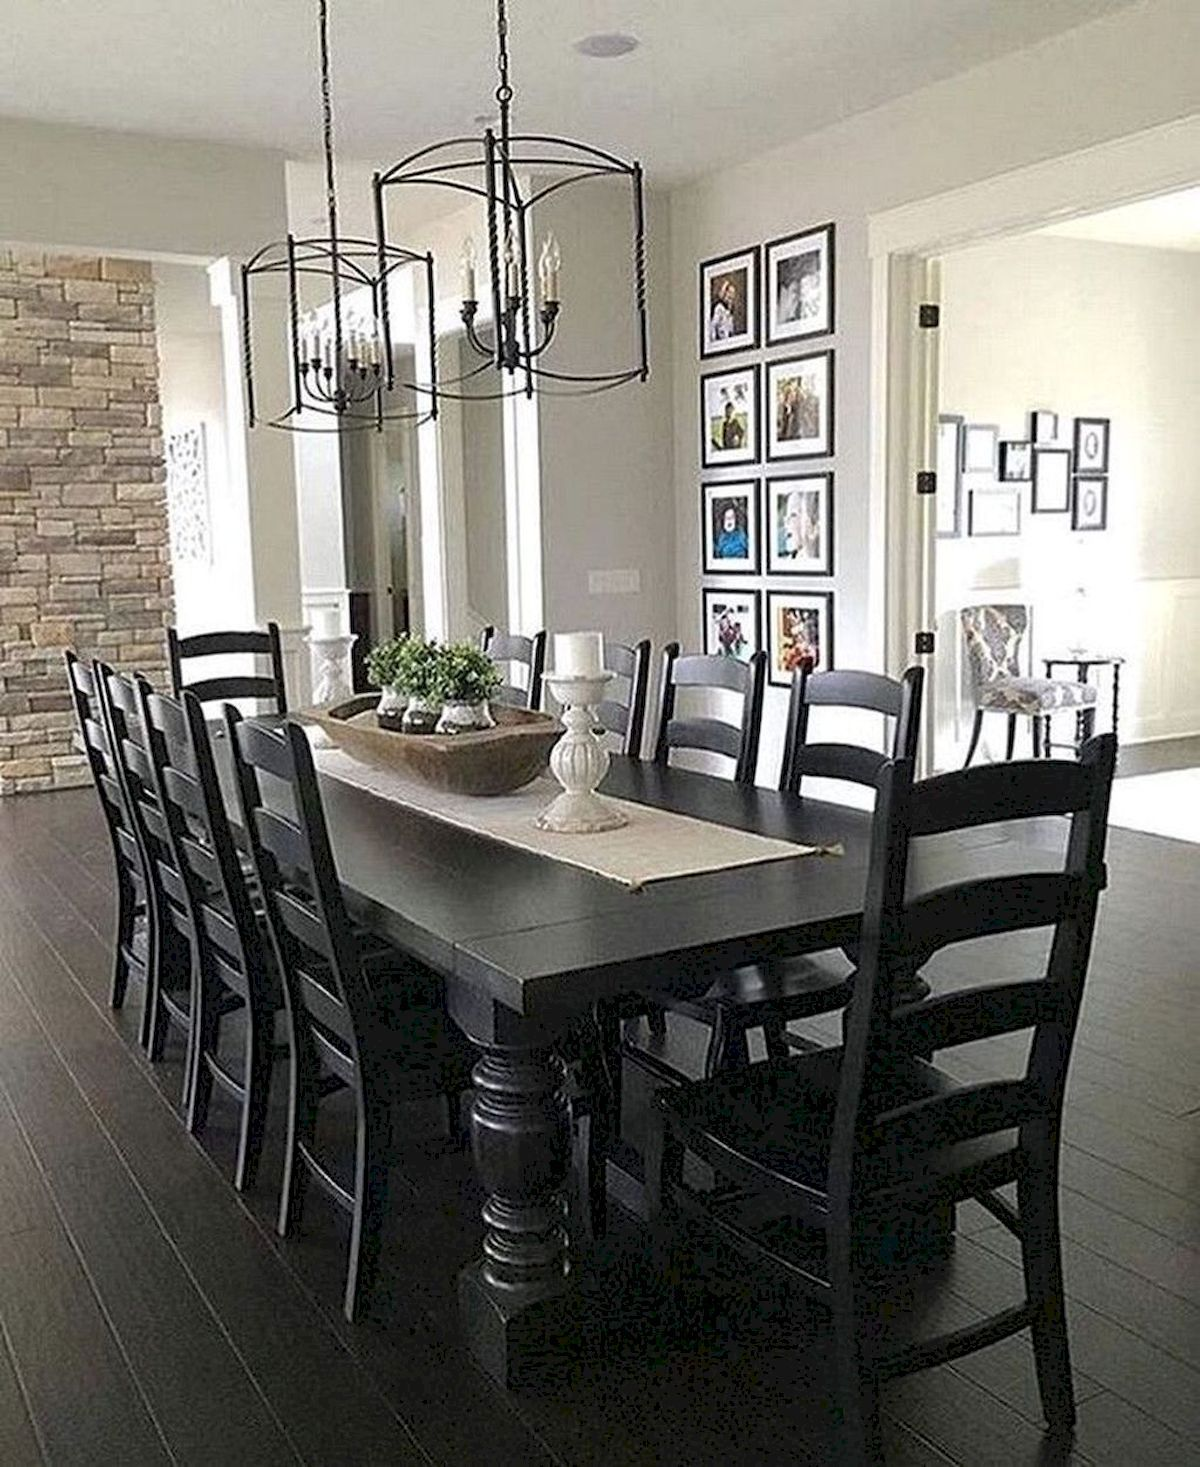 Awesome 60 Modern Farmhouse Dining Room Table Ideas Decor And Makeover Https Coac Farmhouse Dining Room Table Dining Room Table Decor Modern Farmhouse Dining